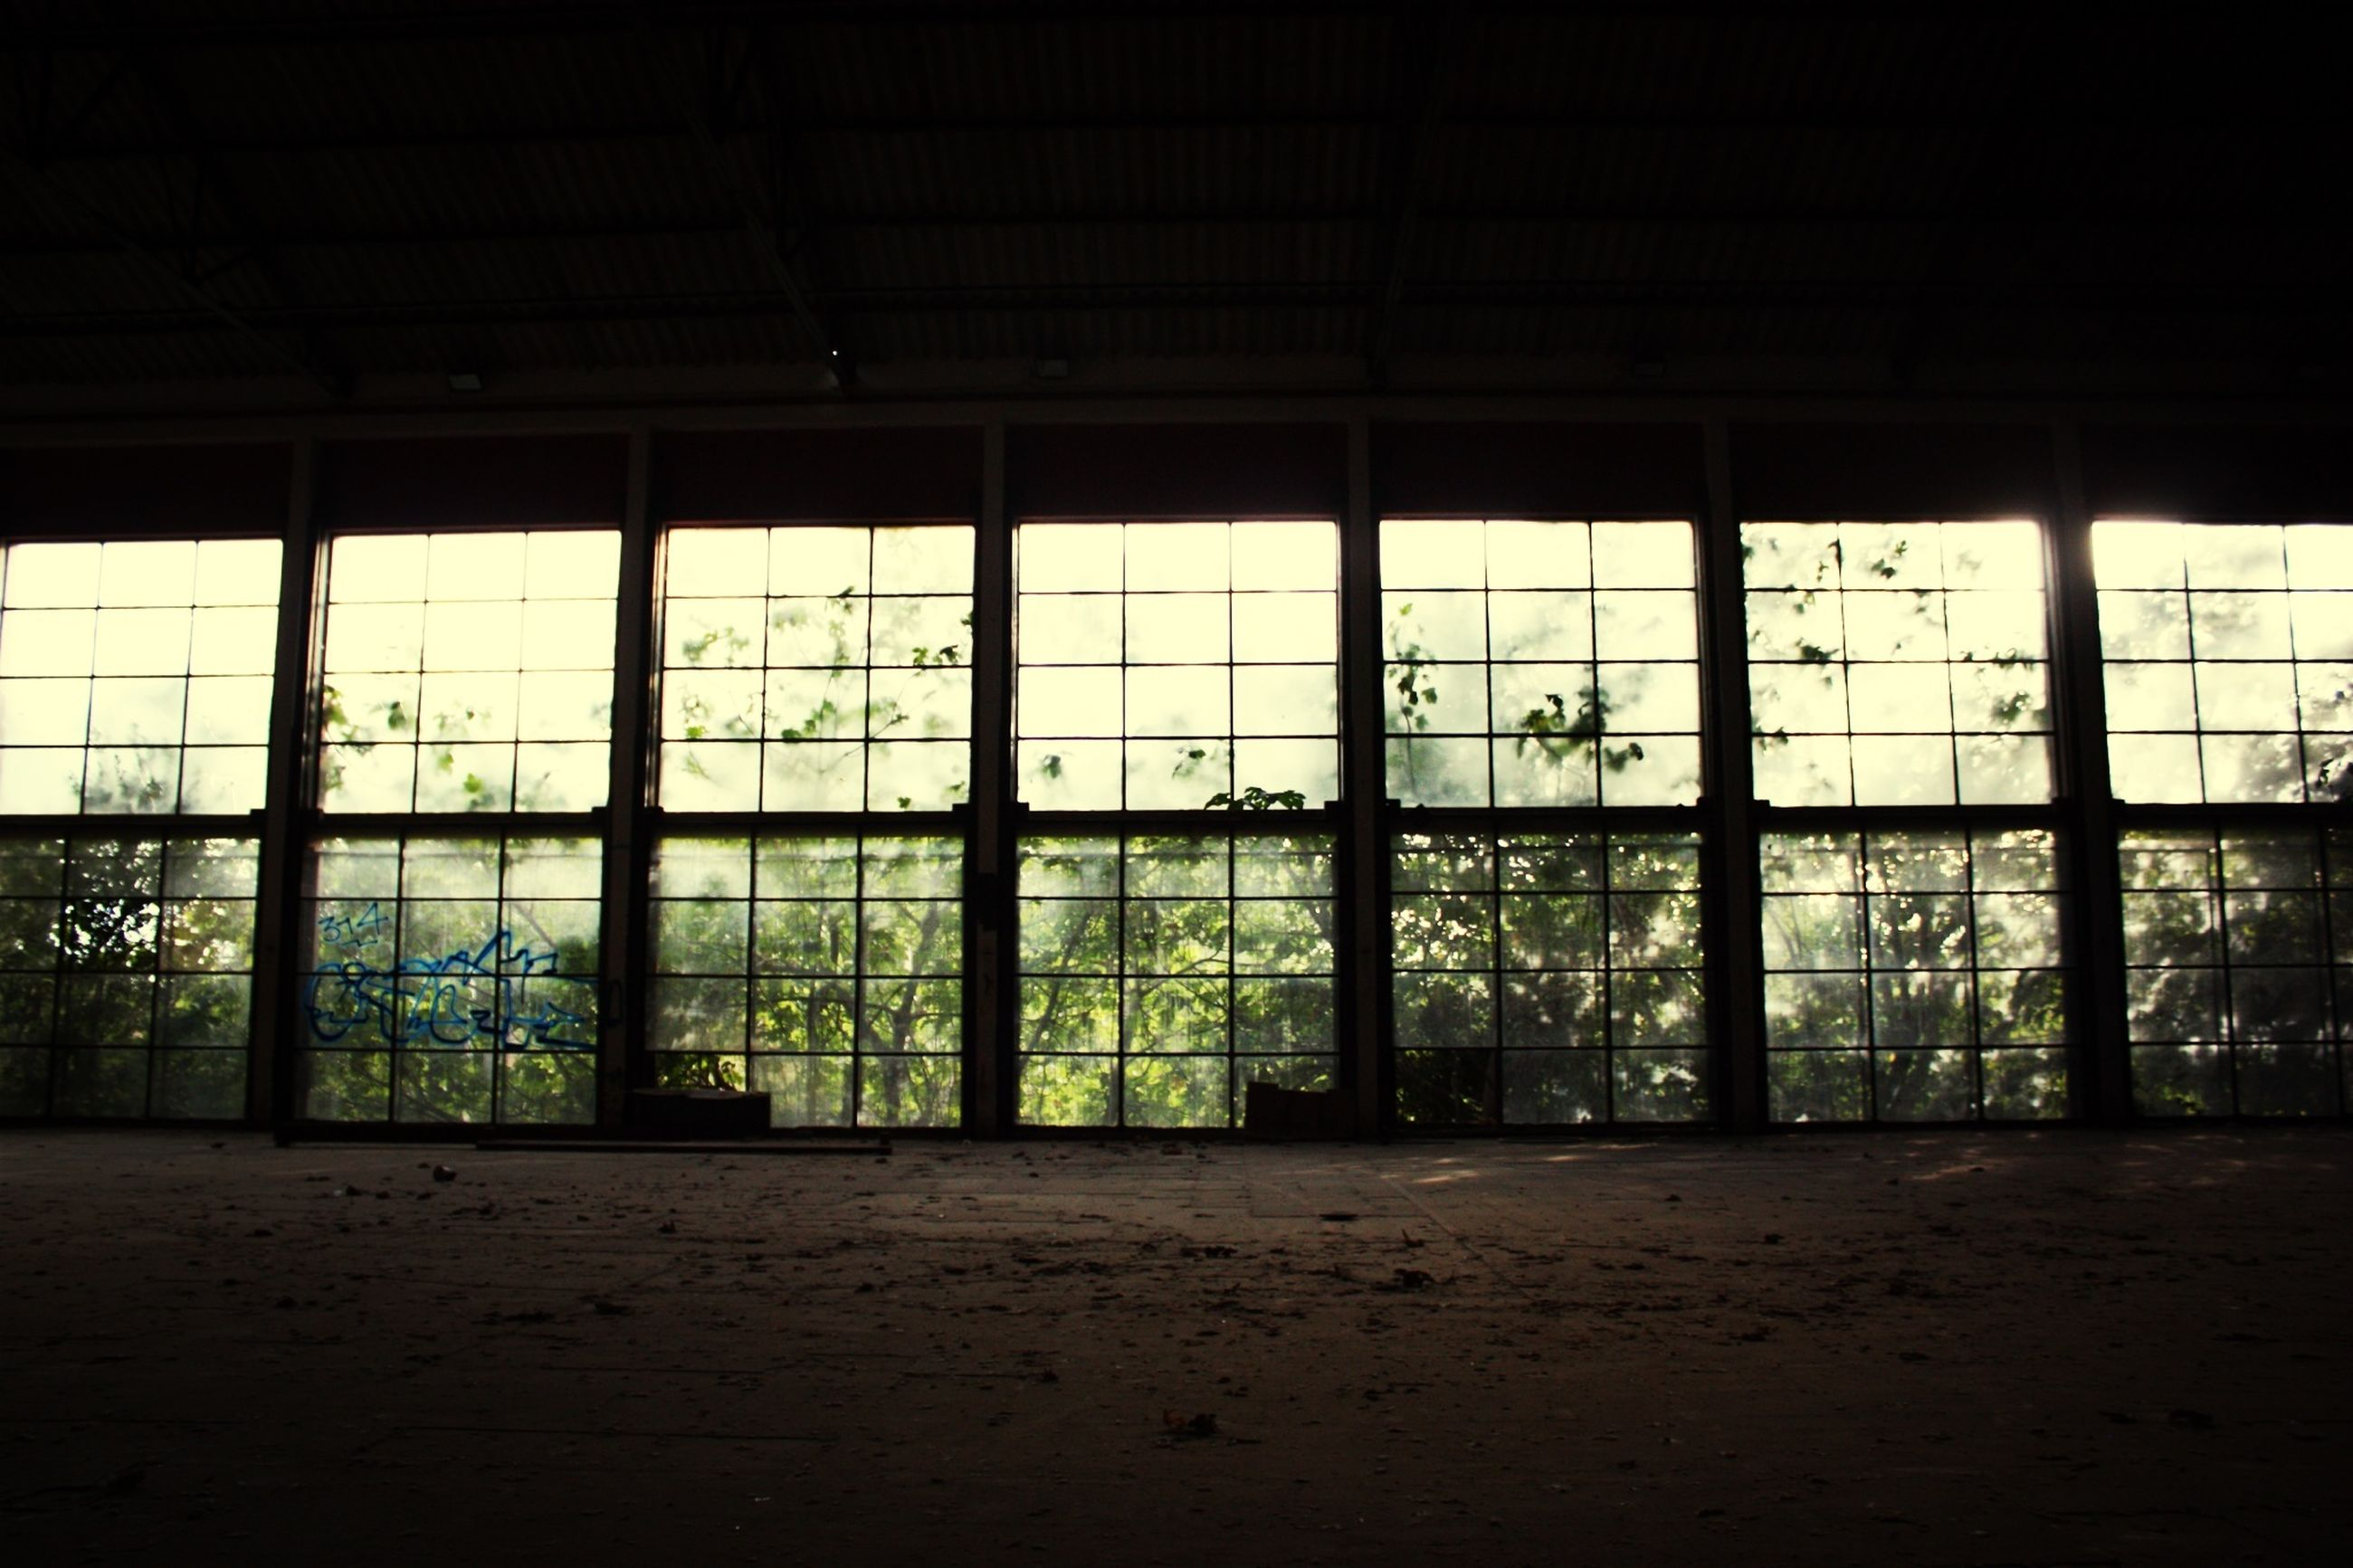 indoors, window, architecture, built structure, glass - material, transparent, interior, abandoned, building, obsolete, flooring, day, closed, building exterior, house, door, empty, no people, damaged, ceiling